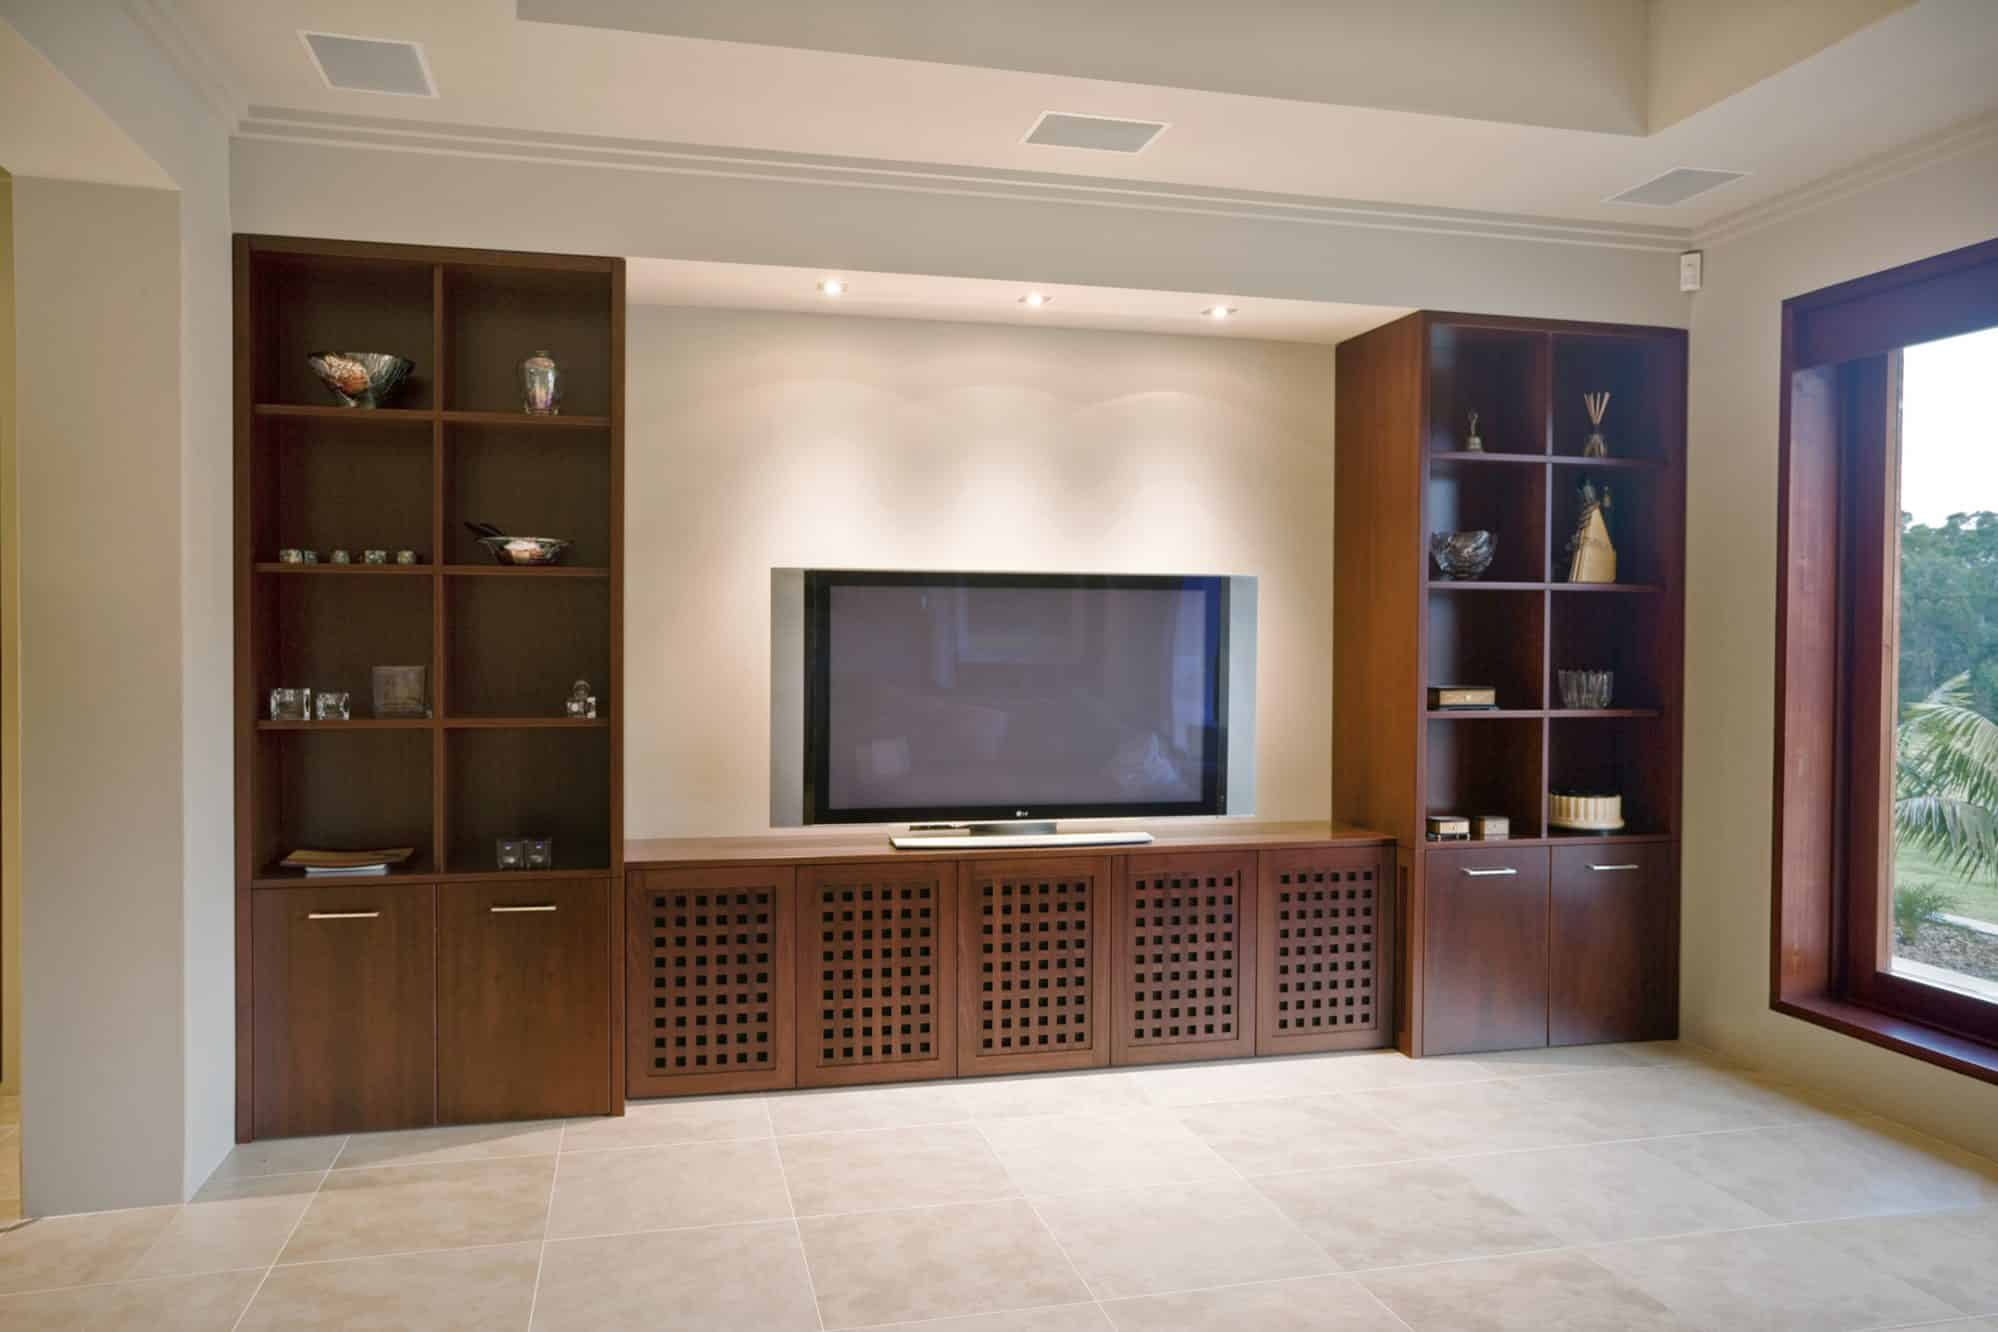 The timber TV unit